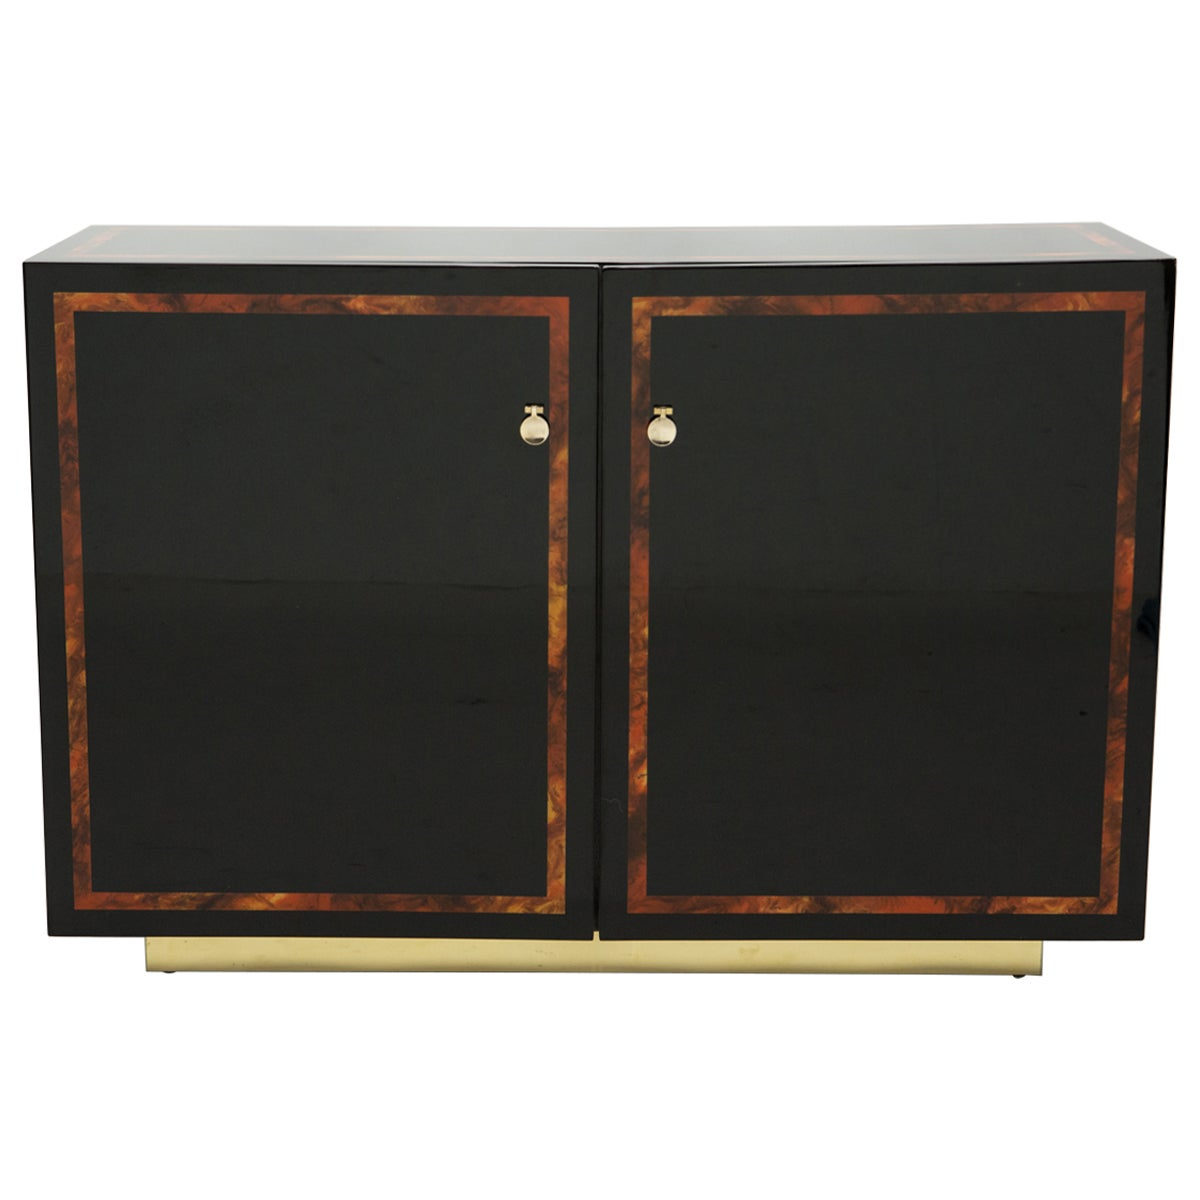 Black Lacquer Burl Wood Brass Cabinet Sideboard by J.C. Mahey, 1970s